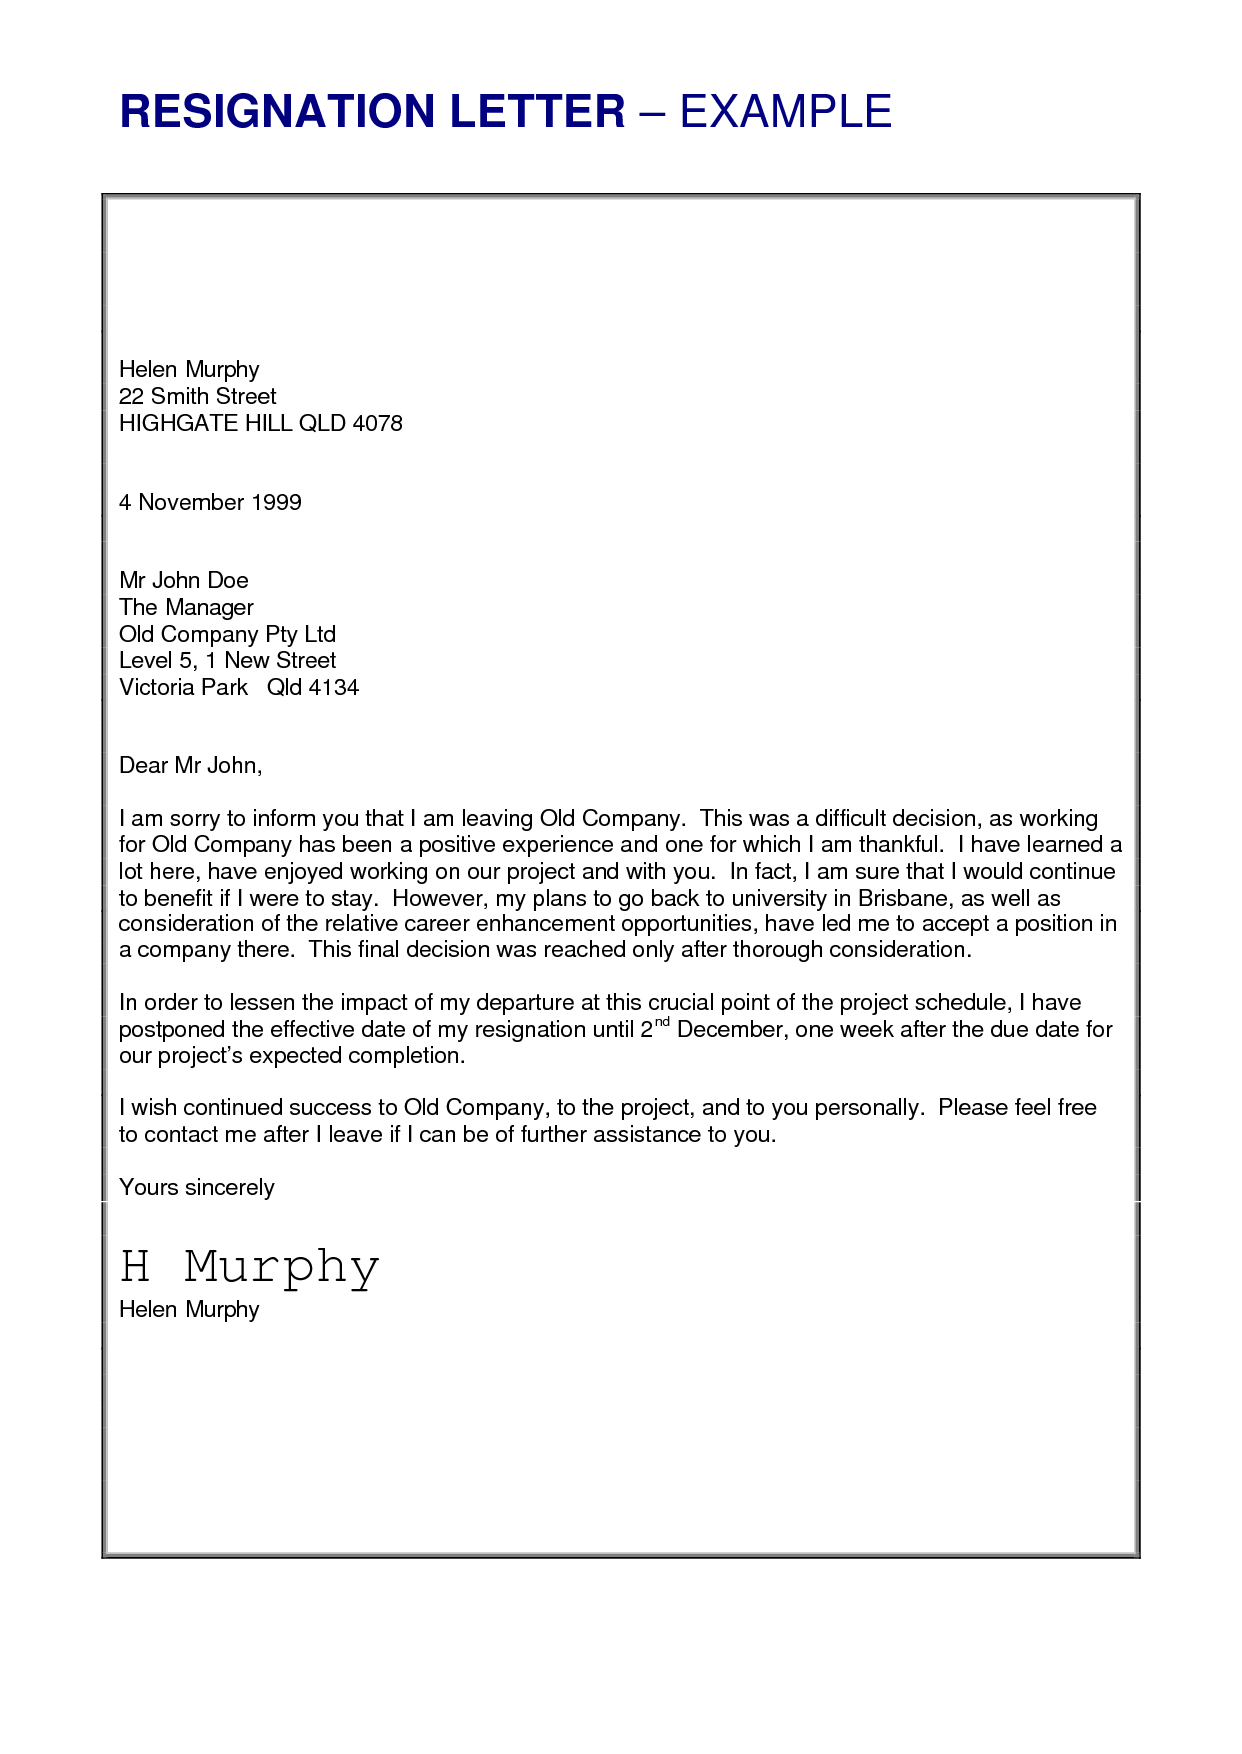 Resignation Letter Email Template - Job Resignation Letter Sample Loganun Blog Job